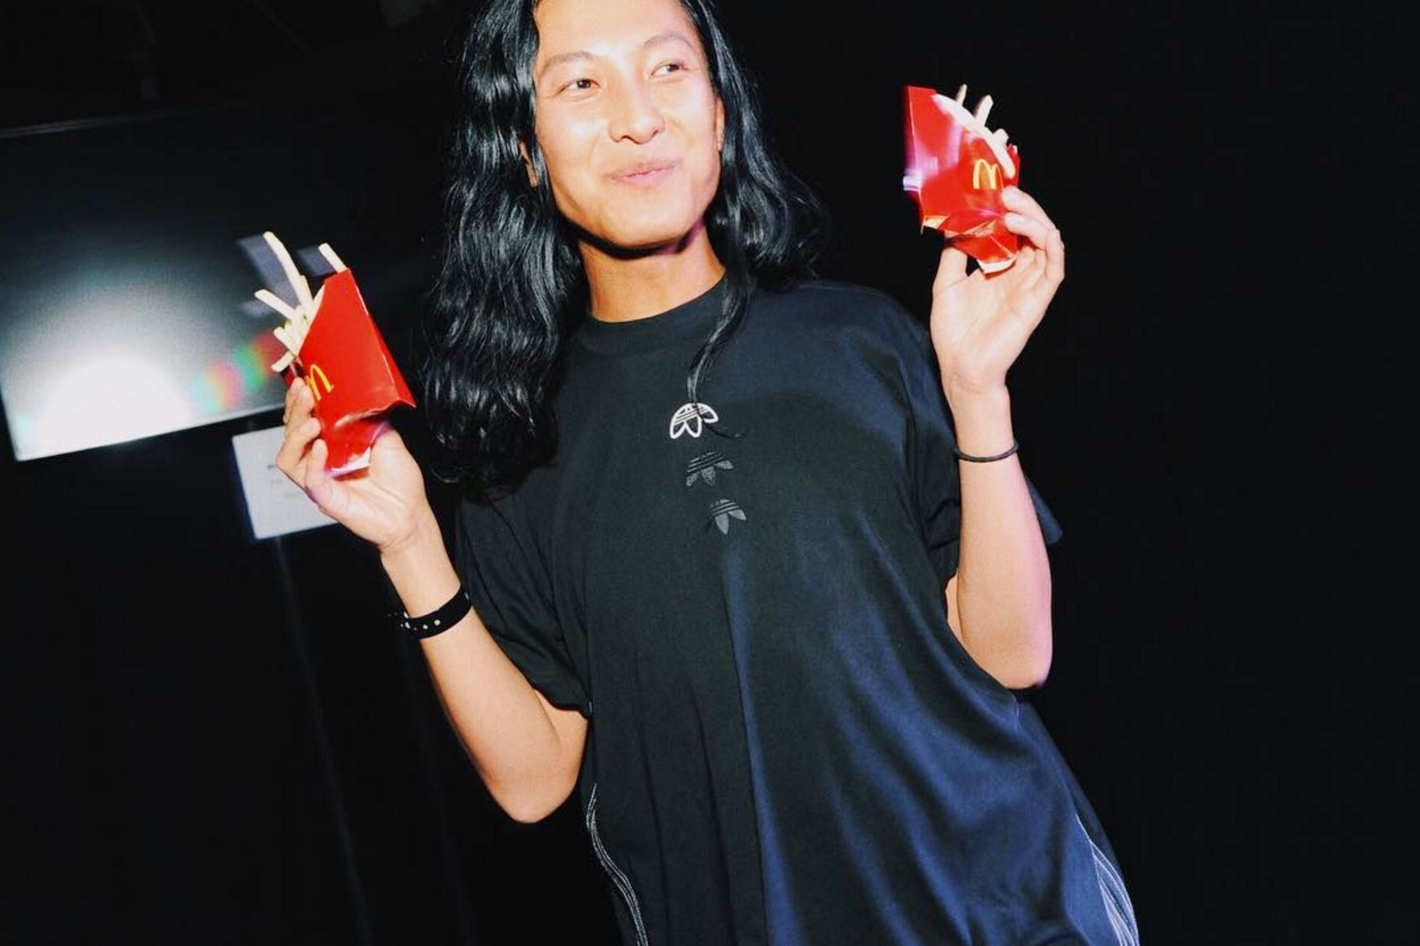 ALEXANDER WANG AT HIS SPRING 2017 AFTERPARTY AND ADIDAS ORIGINALS LAUNCH  / COURTESY IMAGE